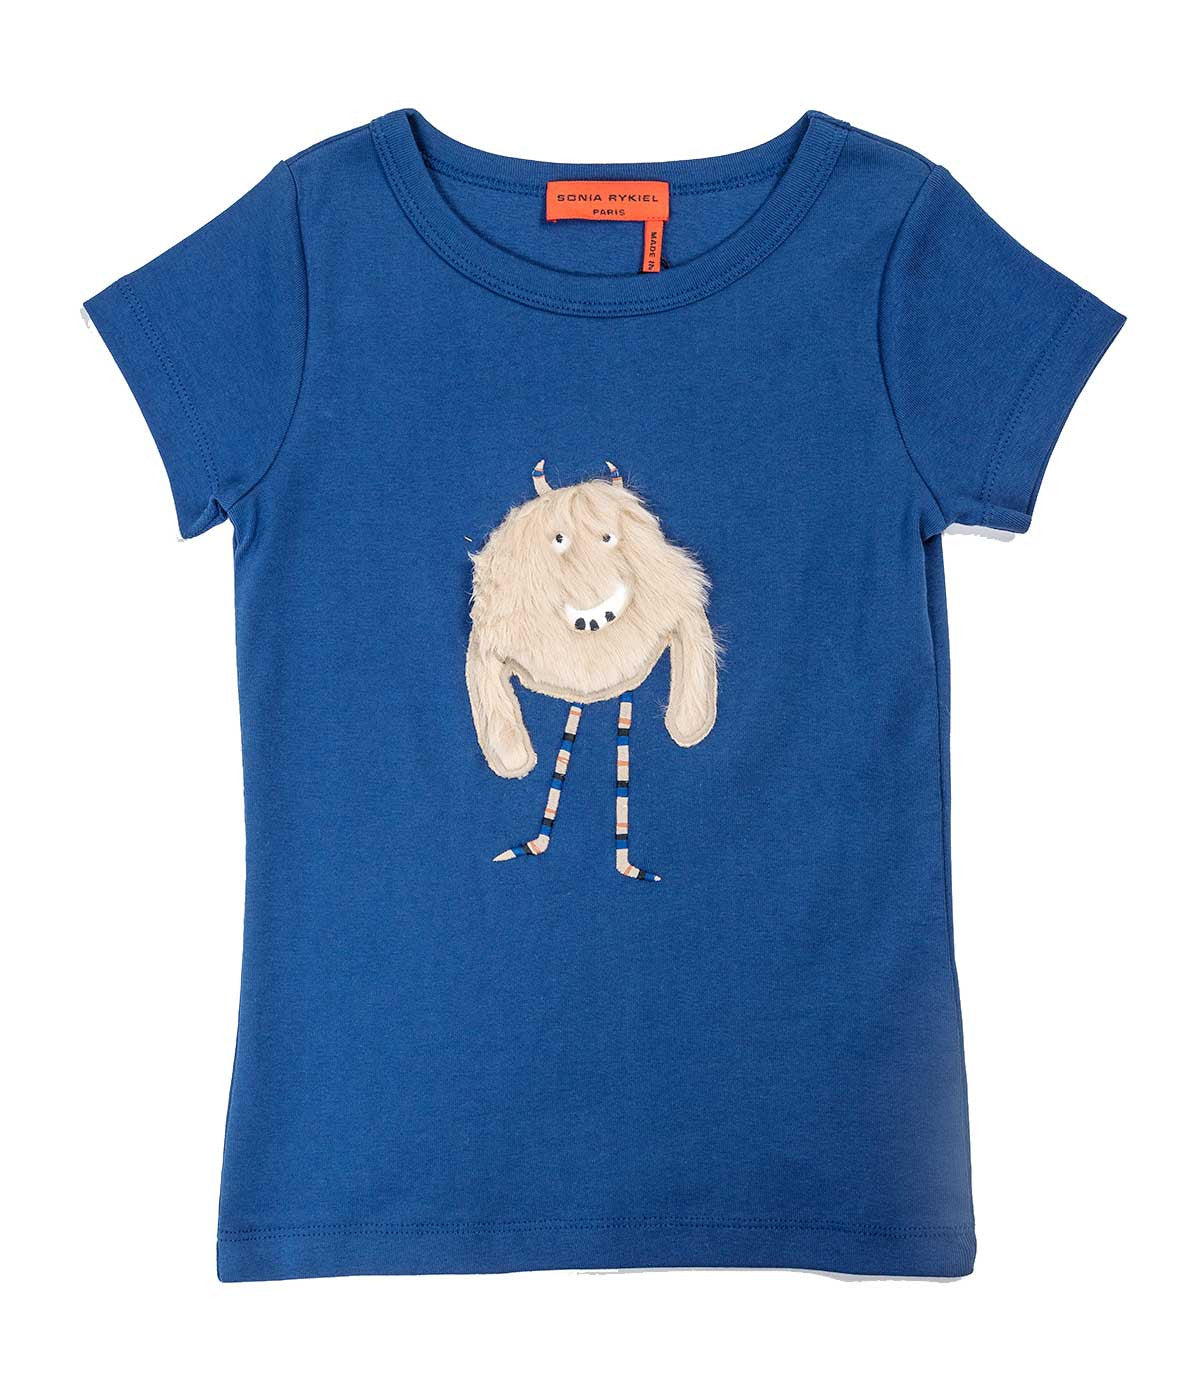 Kids Friendly Monster T-Shirt